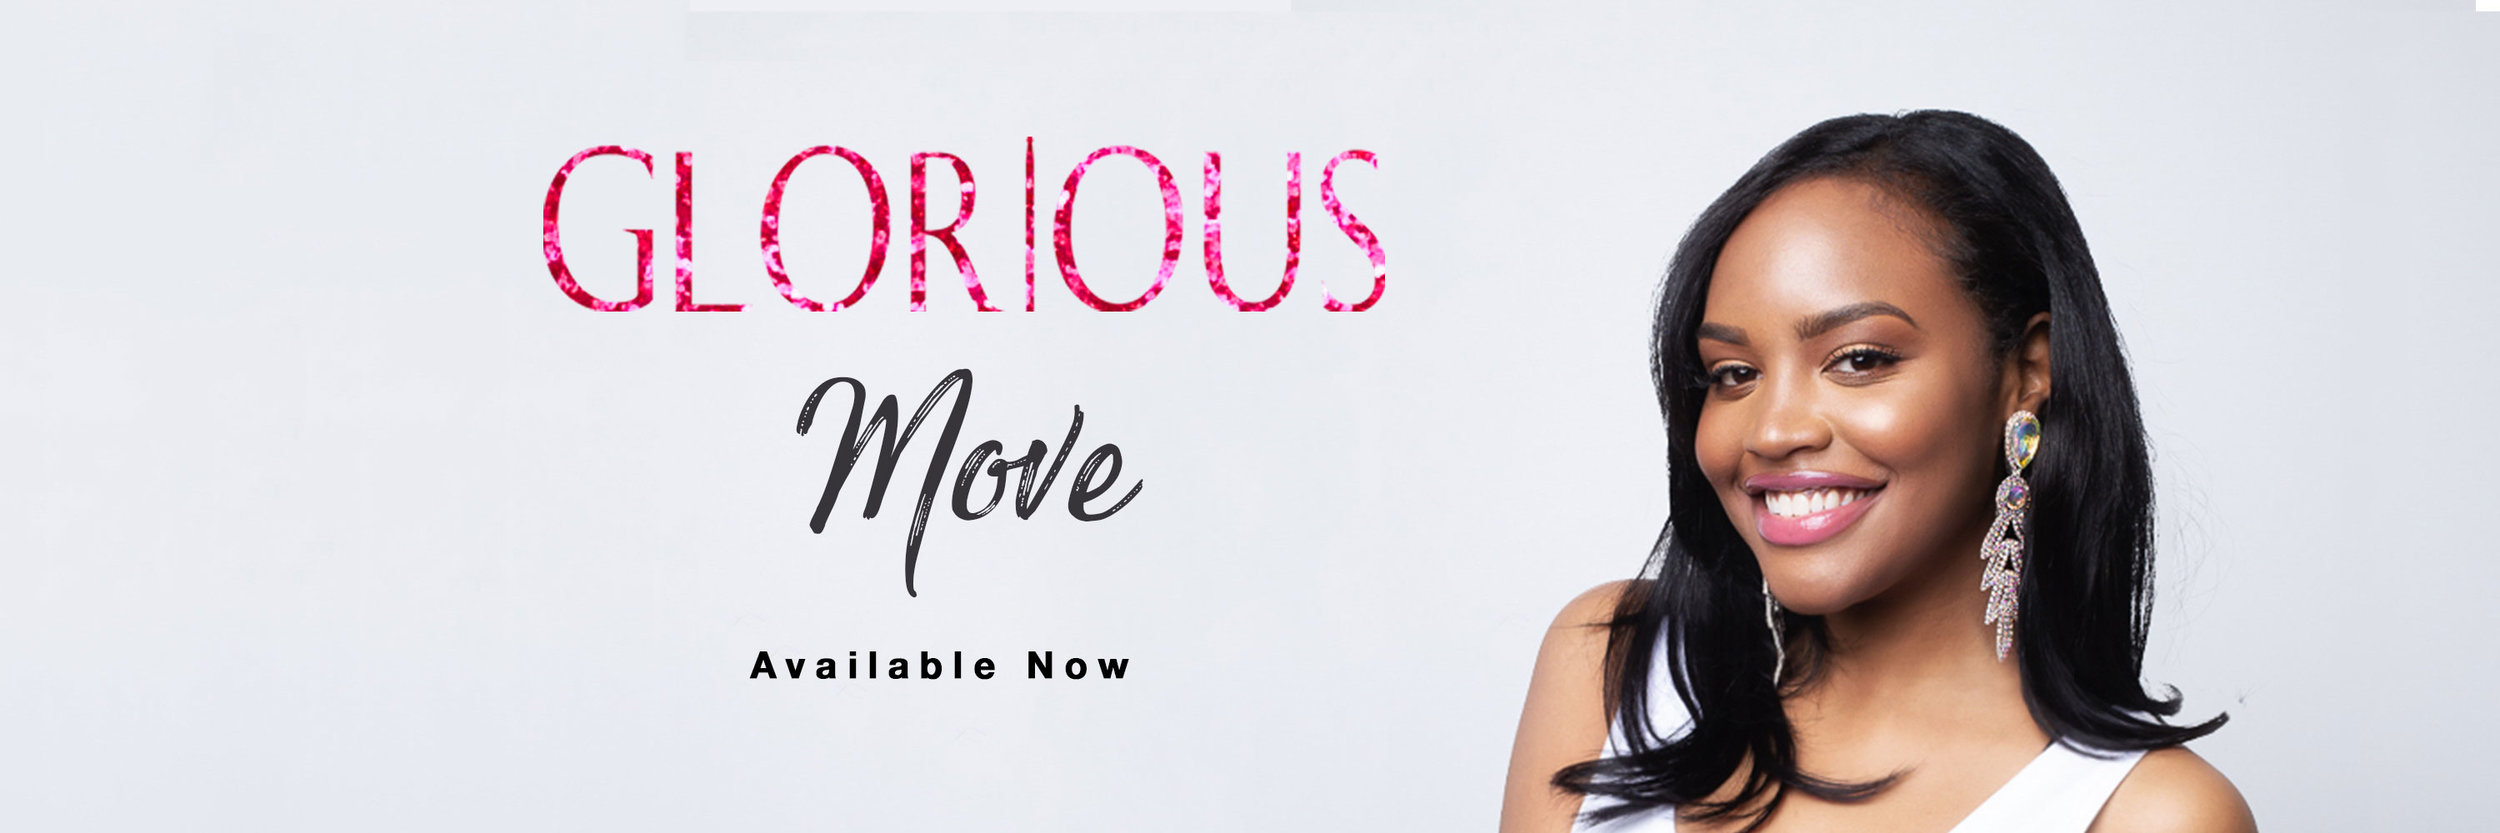 Glorious Pop Singer, Livetronica Drummer, Producer and Songwriter - Single Release - Move